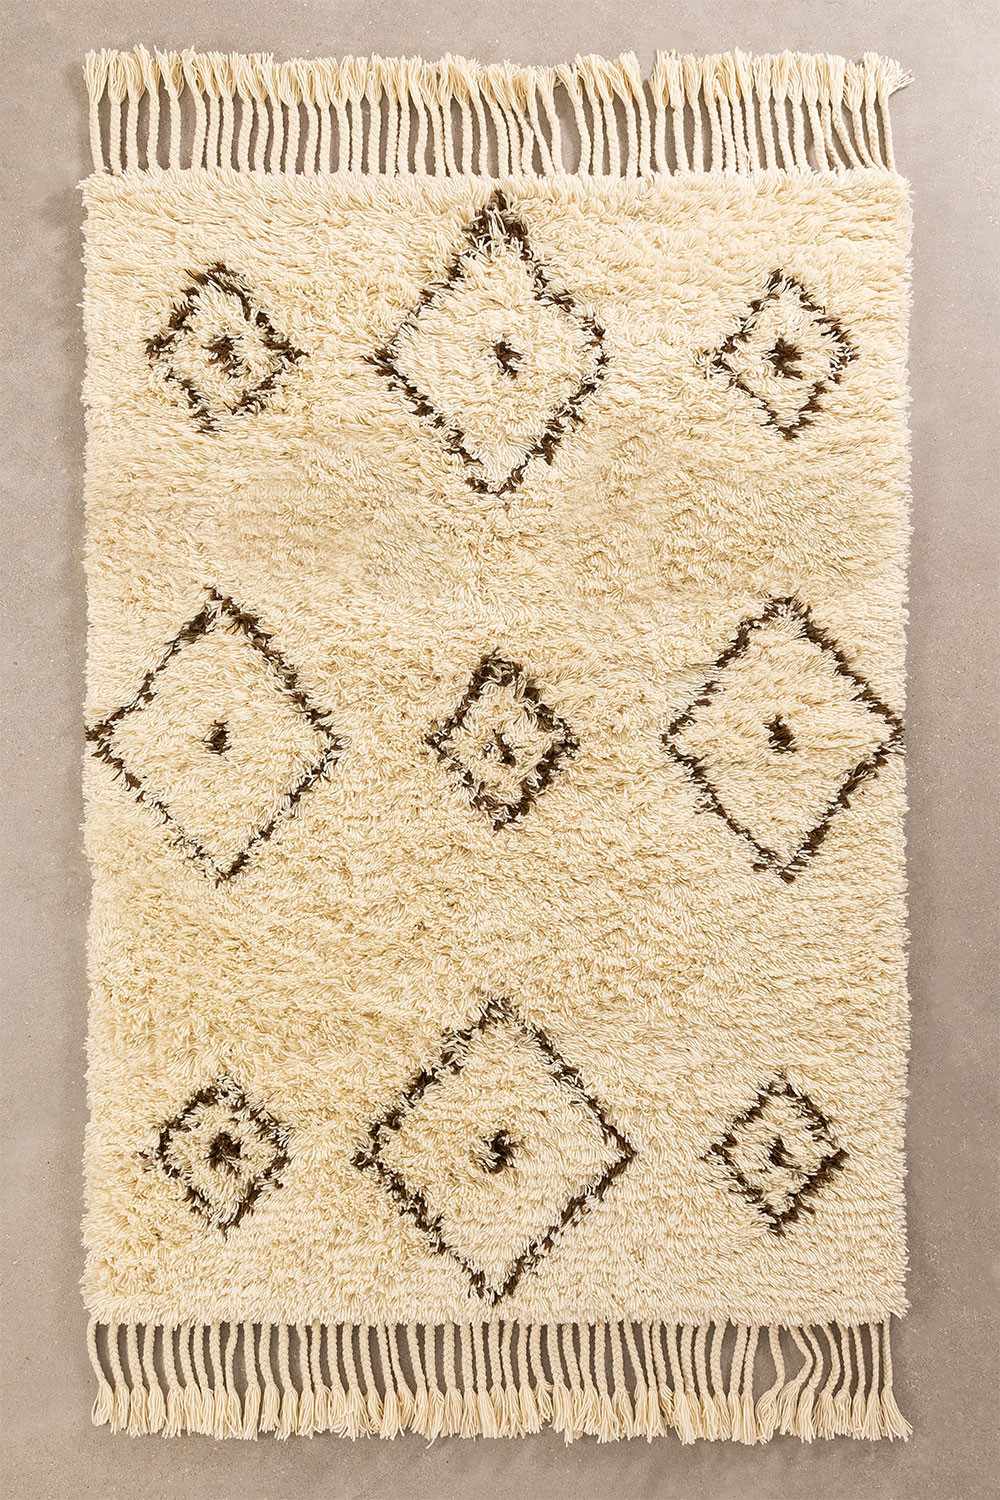 Cotton and Wool Rug (215x125 cm) Ariana, gallery image 1